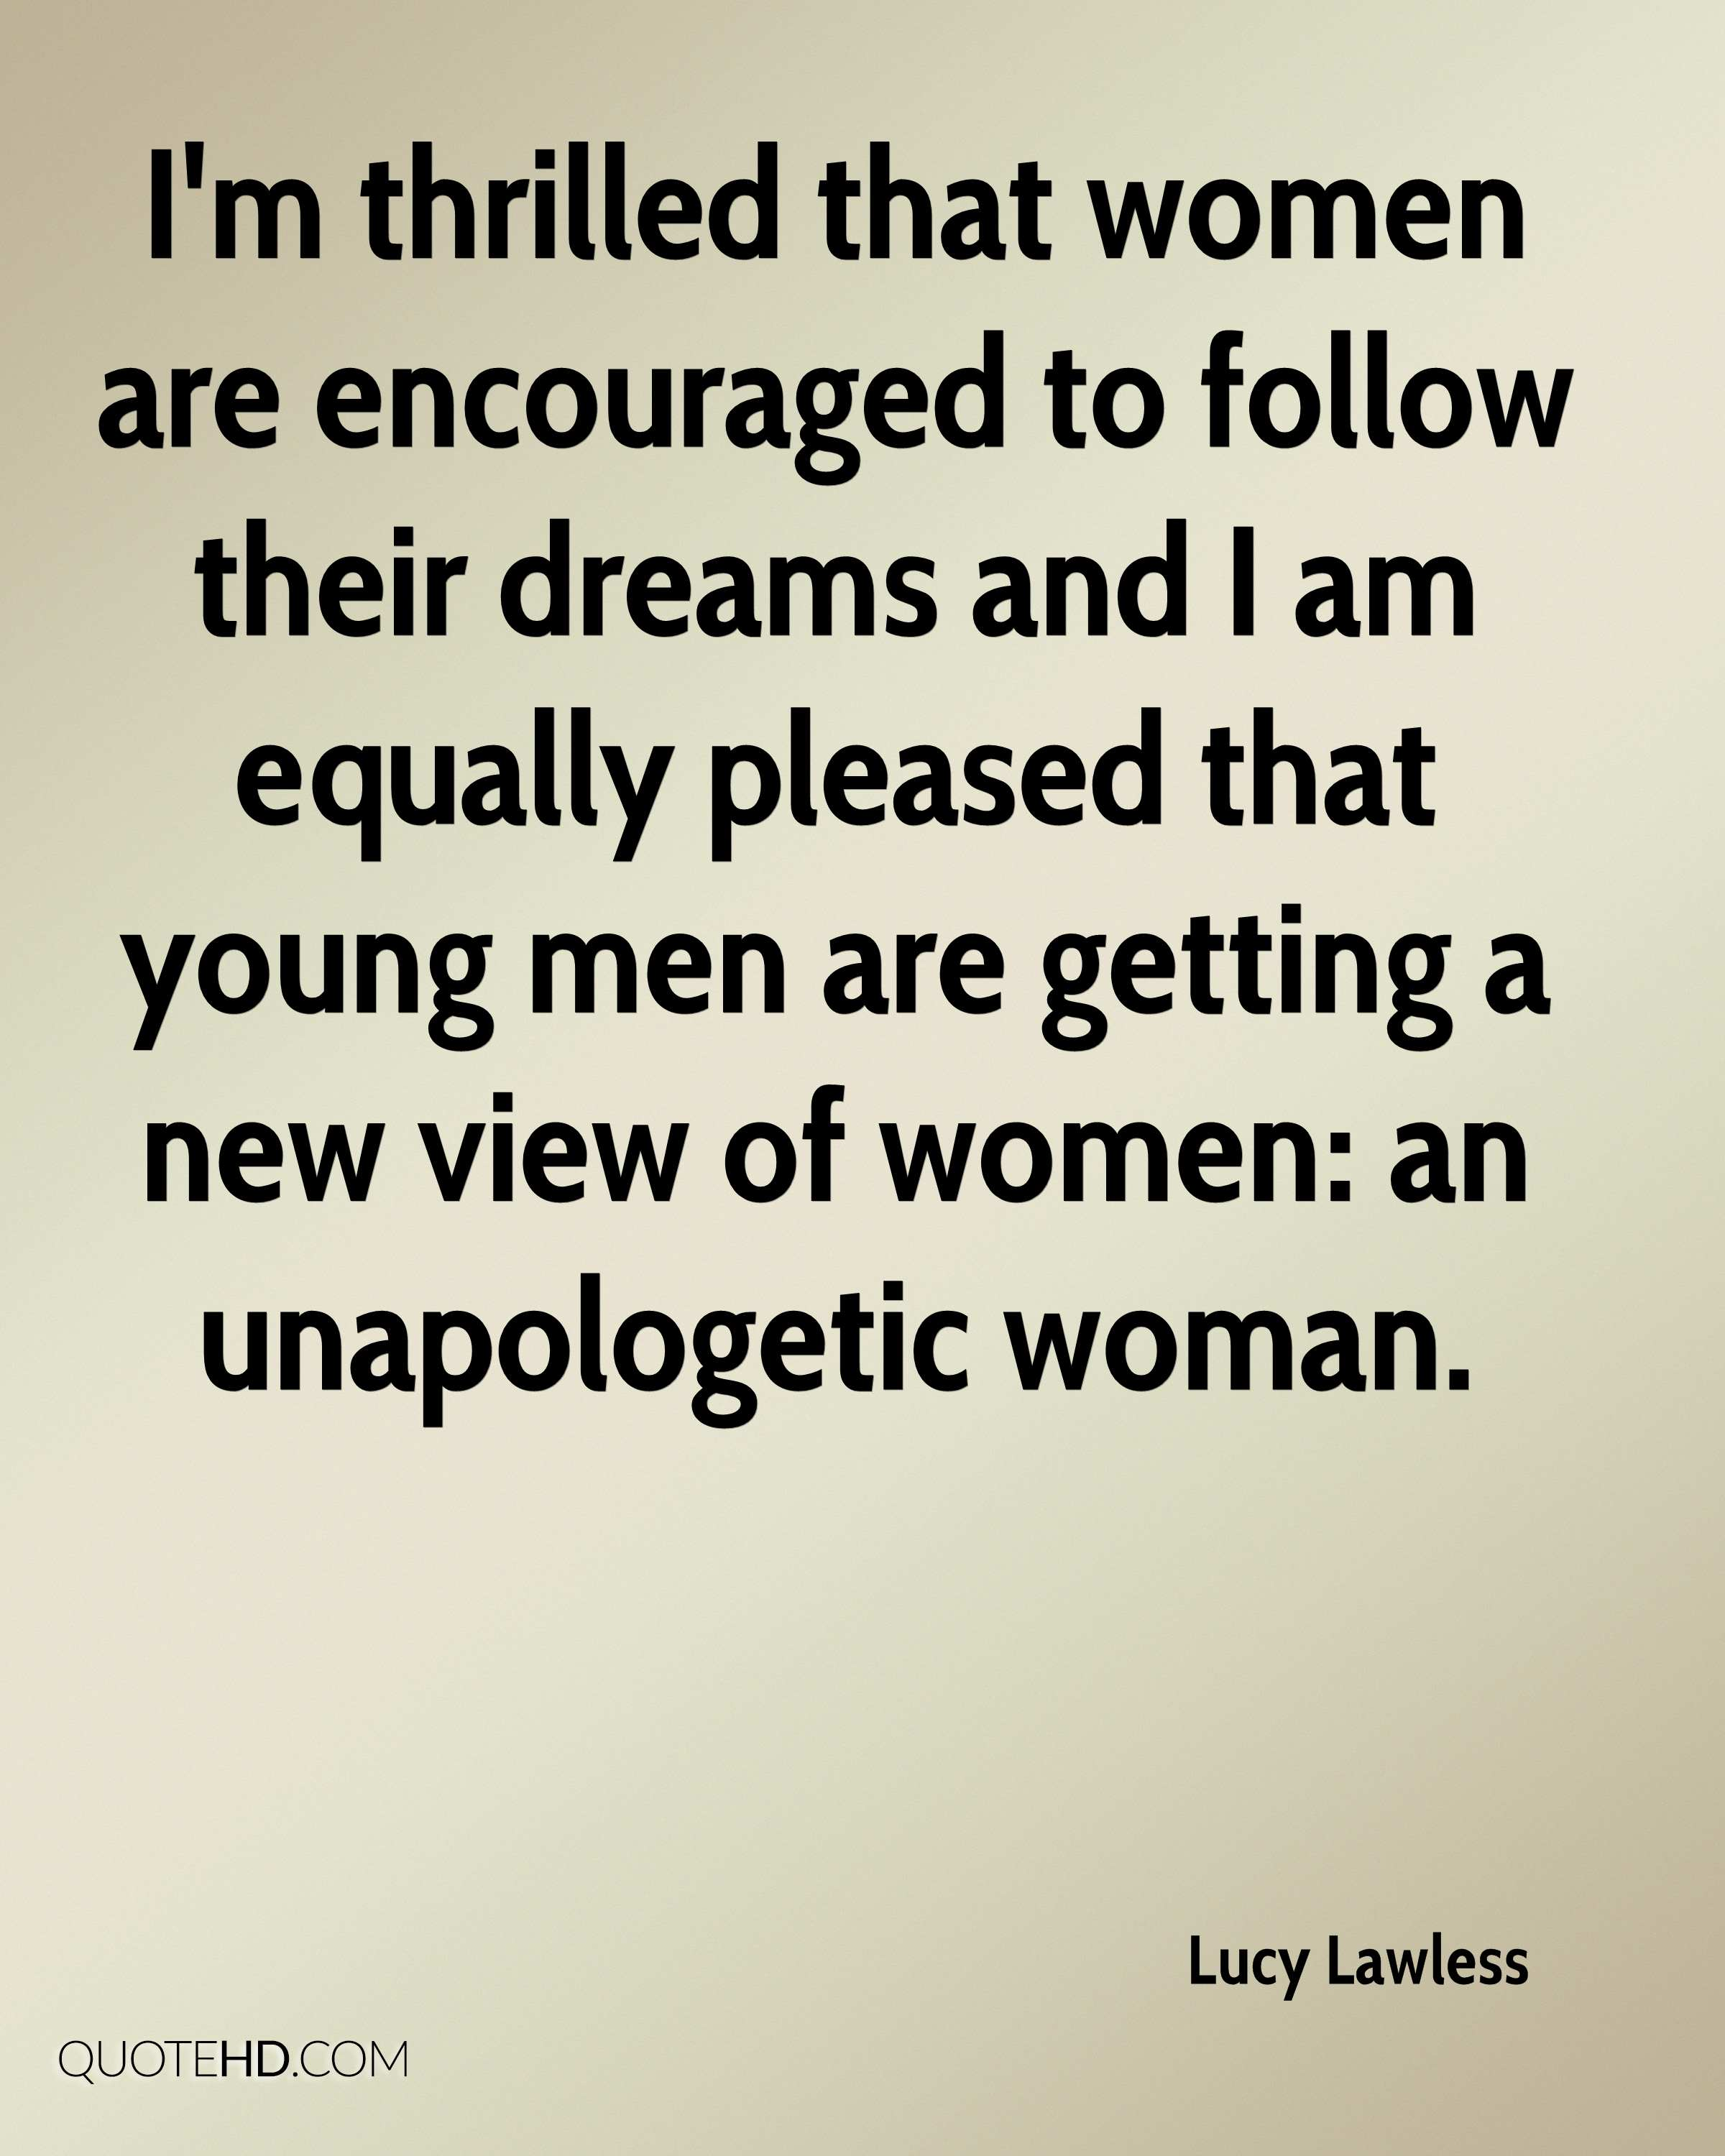 I'm thrilled that women are encouraged to follow their dreams and I am equally pleased that young men are getting a new view of women: an unapologetic woman.